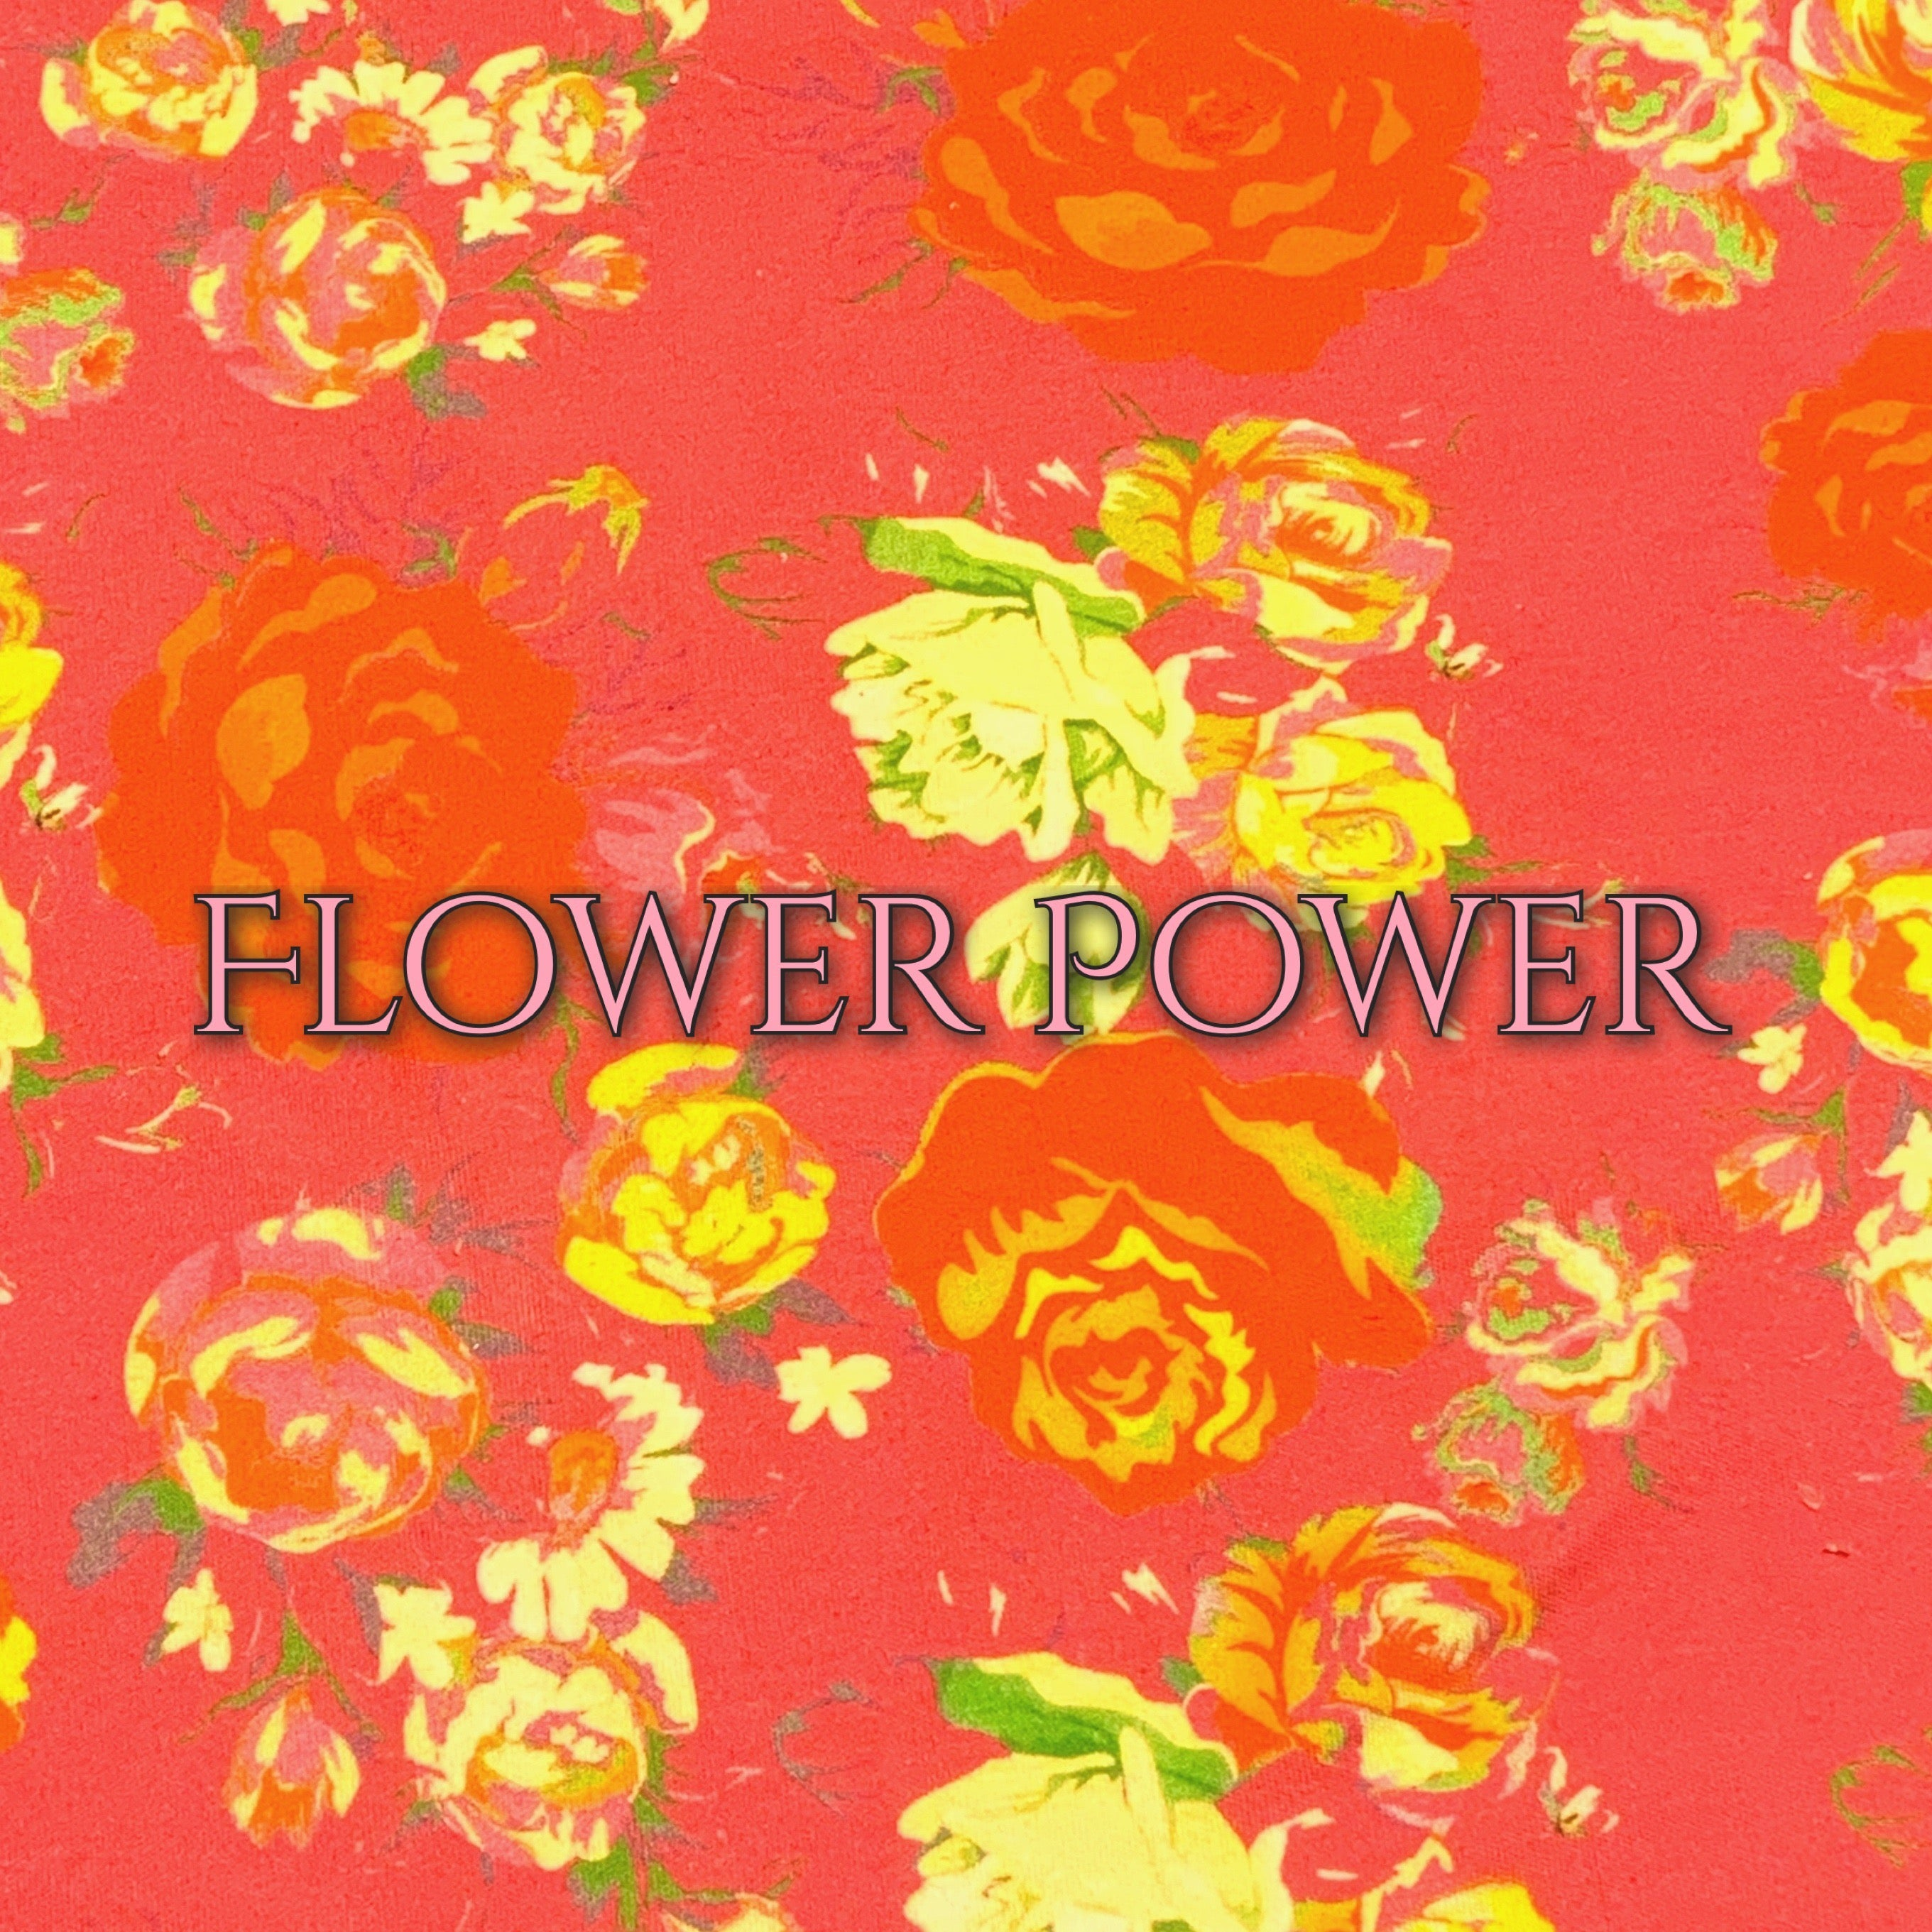 Flower Power - Organic Cotton Knit